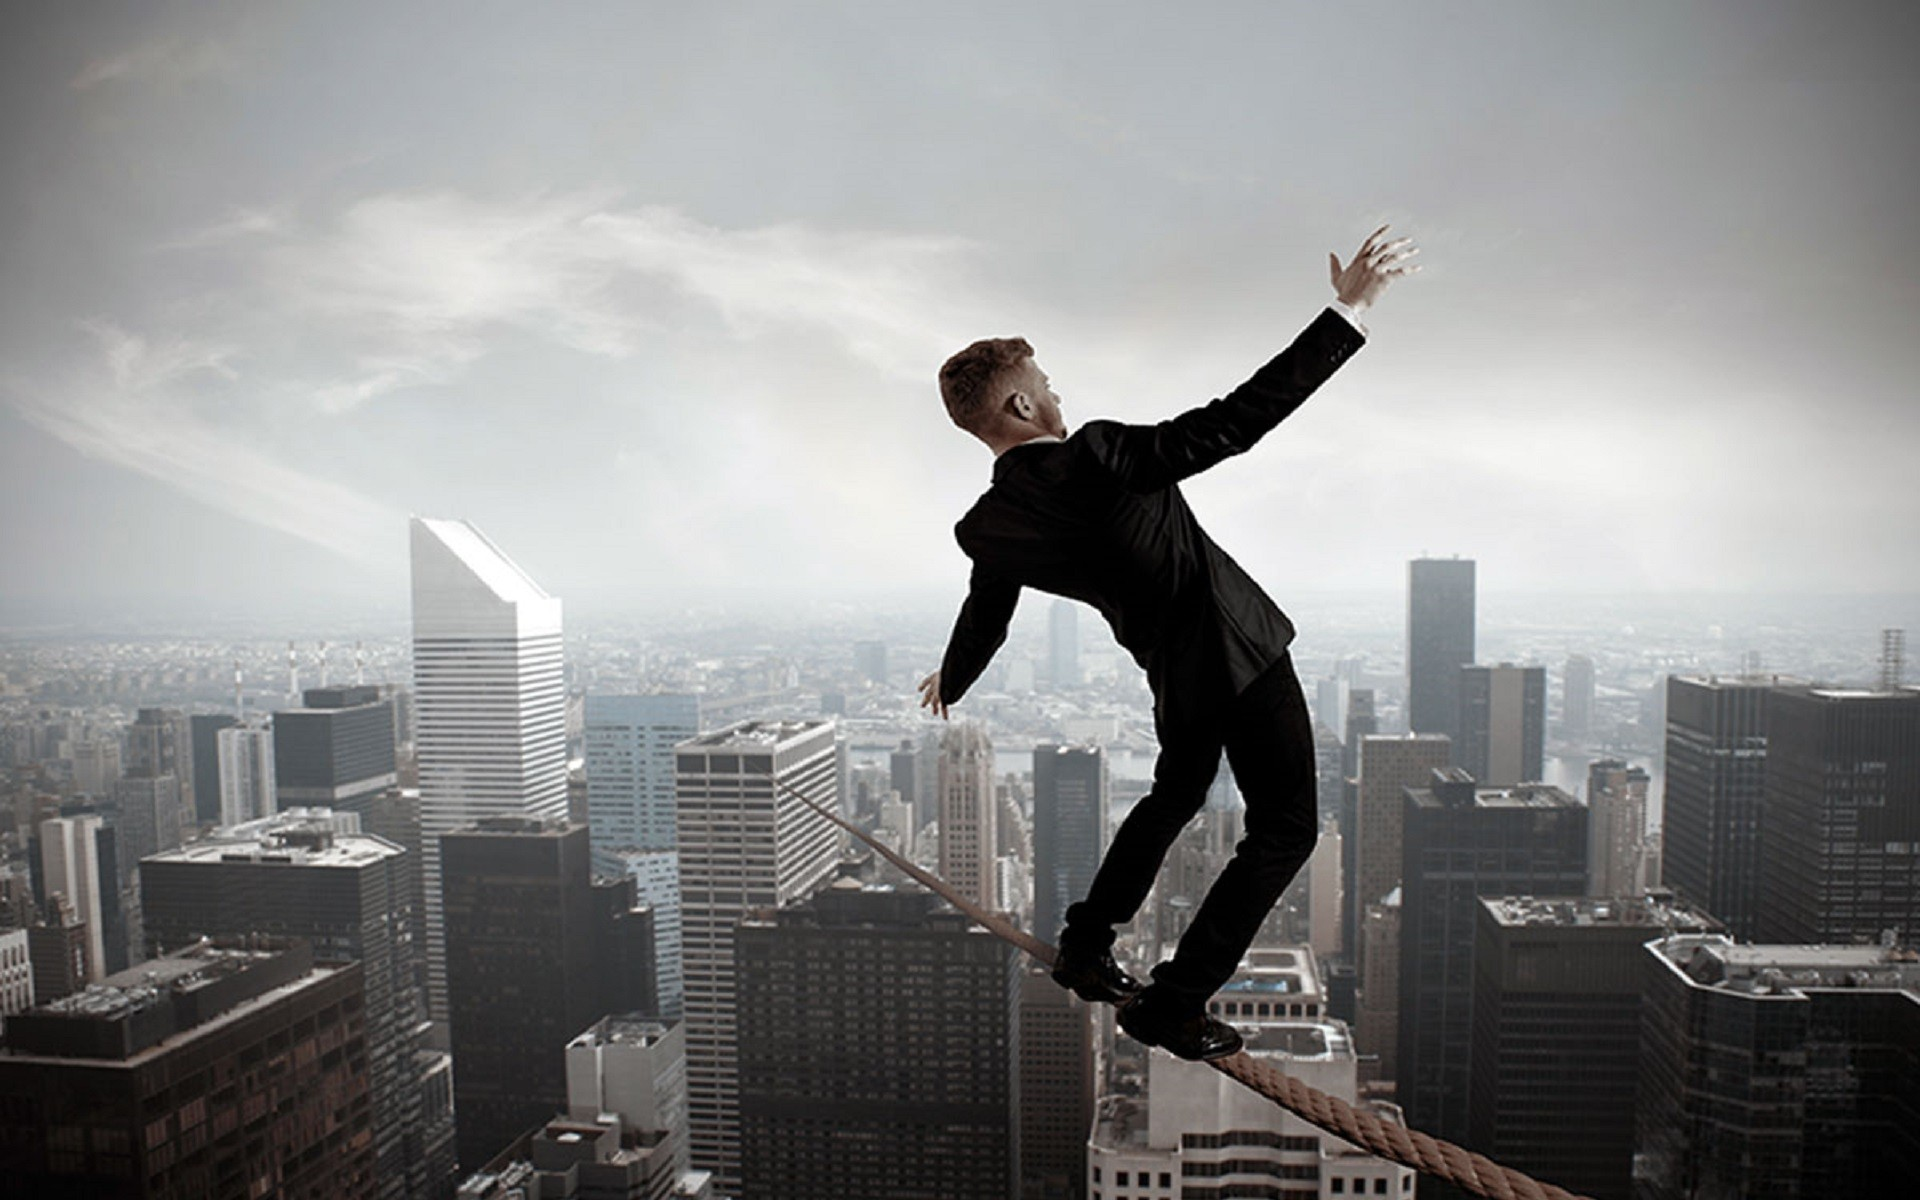 Mindset story: The tightrope story about walking the walk